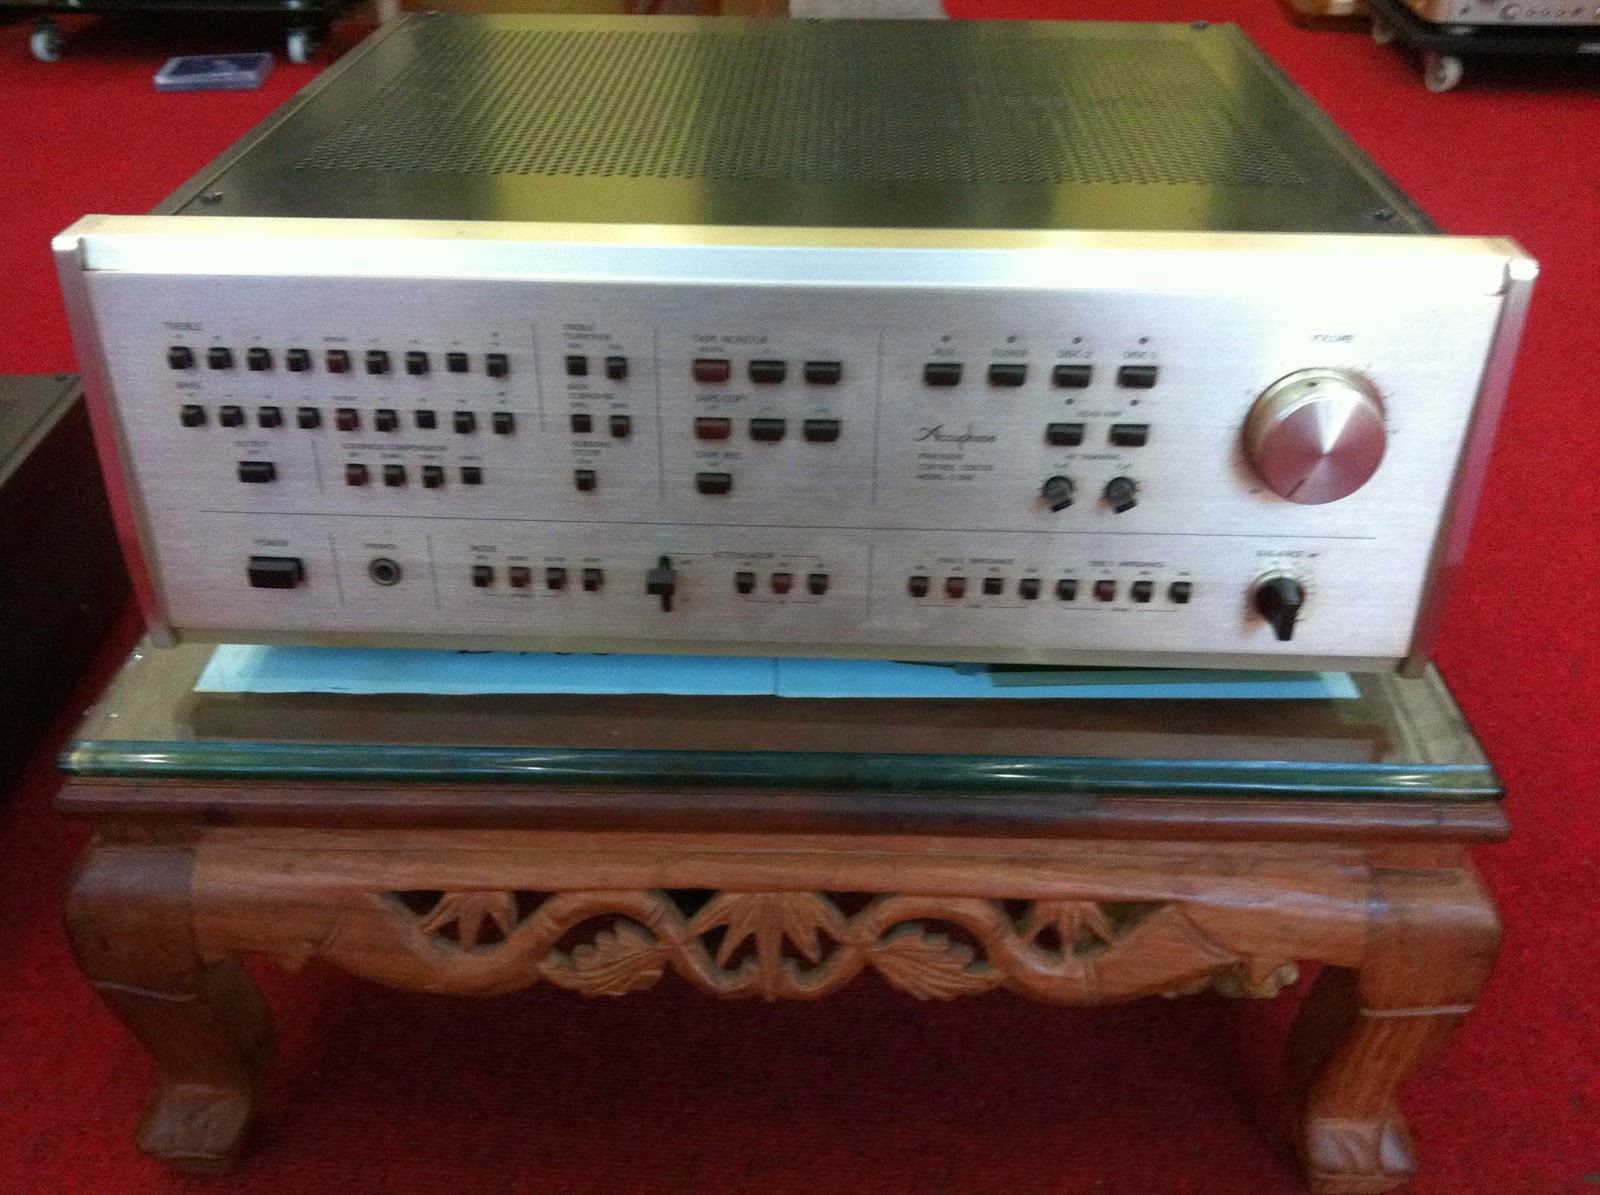 Mặt trước Preamplifier Accuphase C240